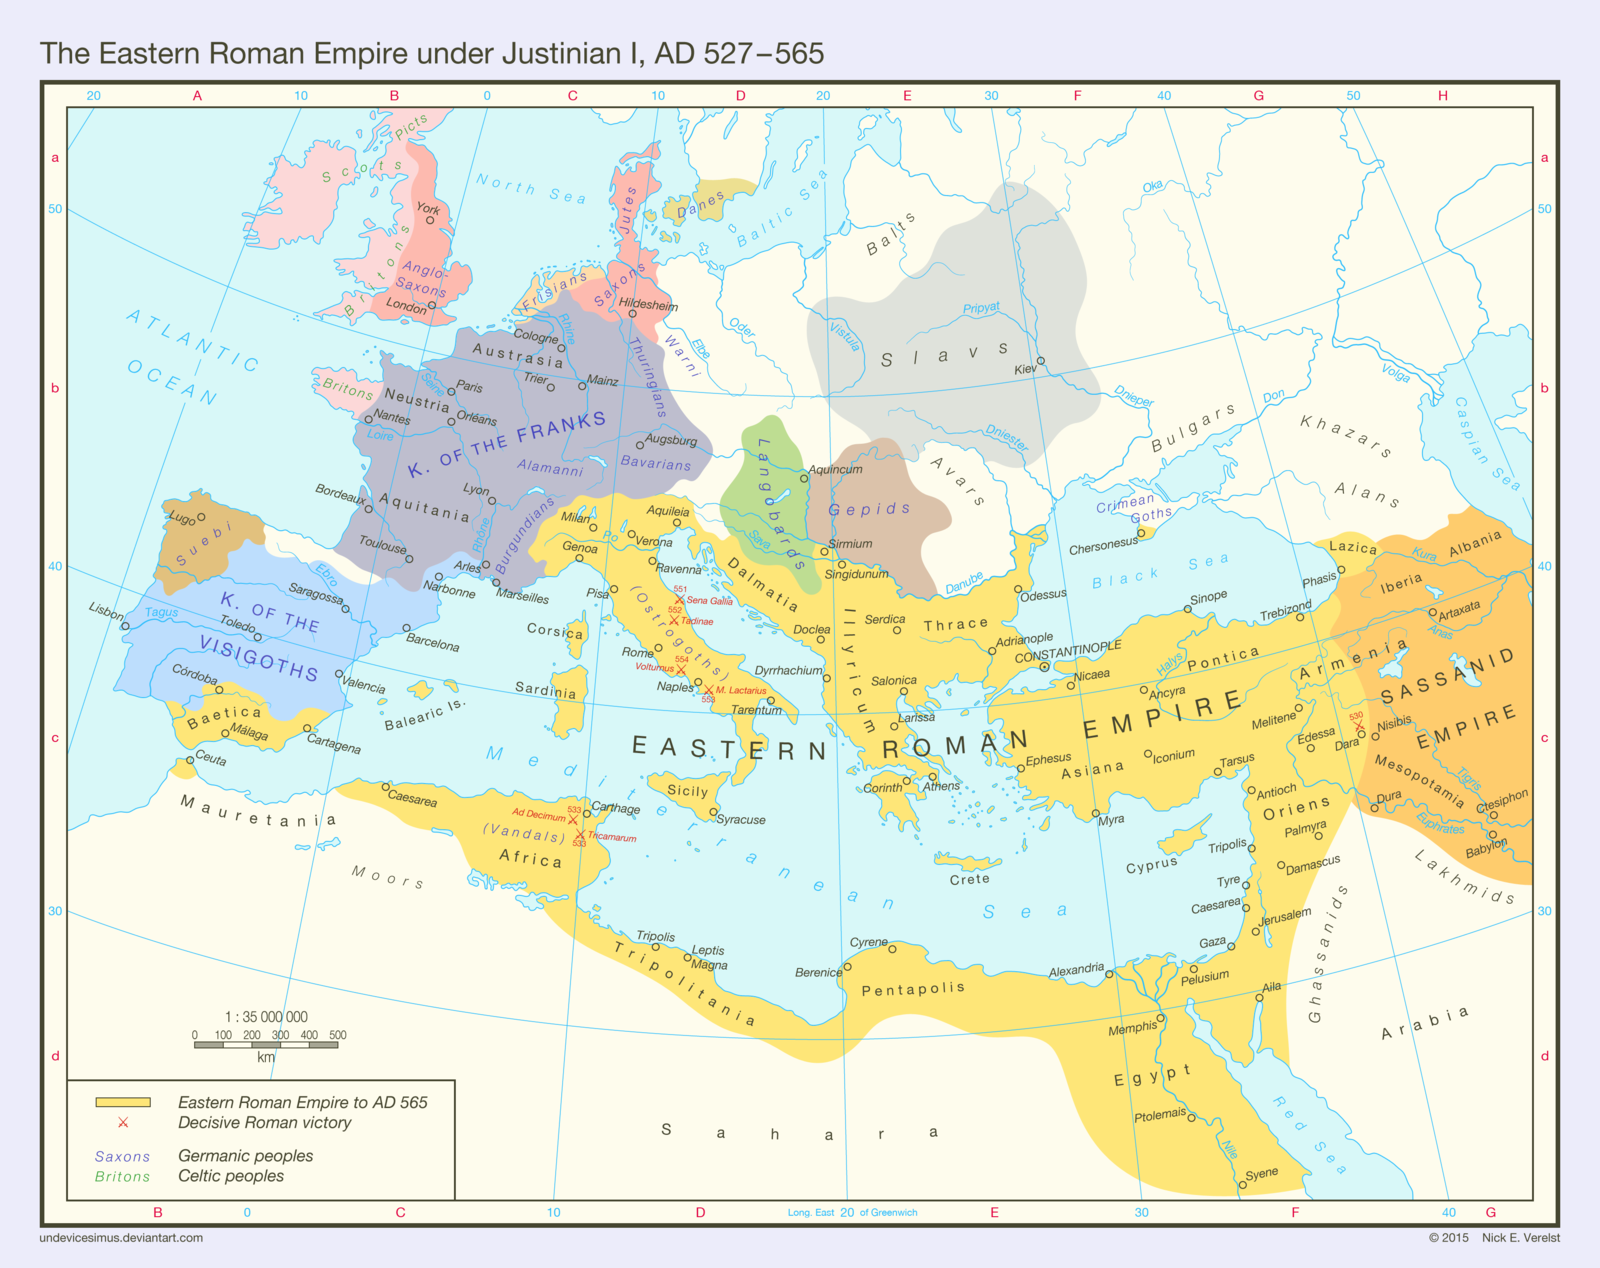 eastern roman empire map The Eastern Roman Empire Ad 527 565 Byzantine Empire Map eastern roman empire map